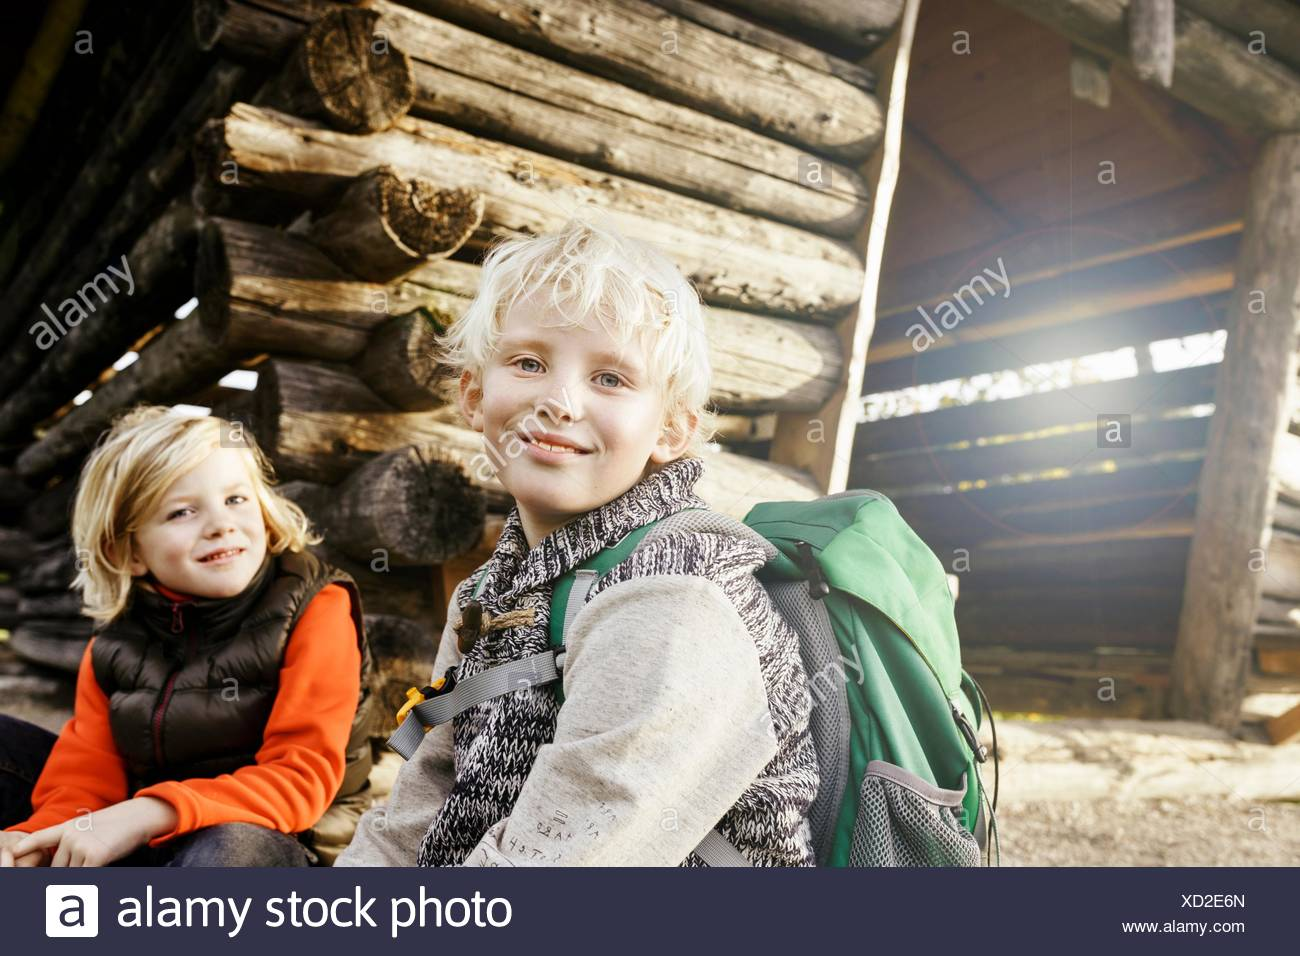 Blonde haired brother and sister sitting outside log cabin looking at camera smiling - Stock Image